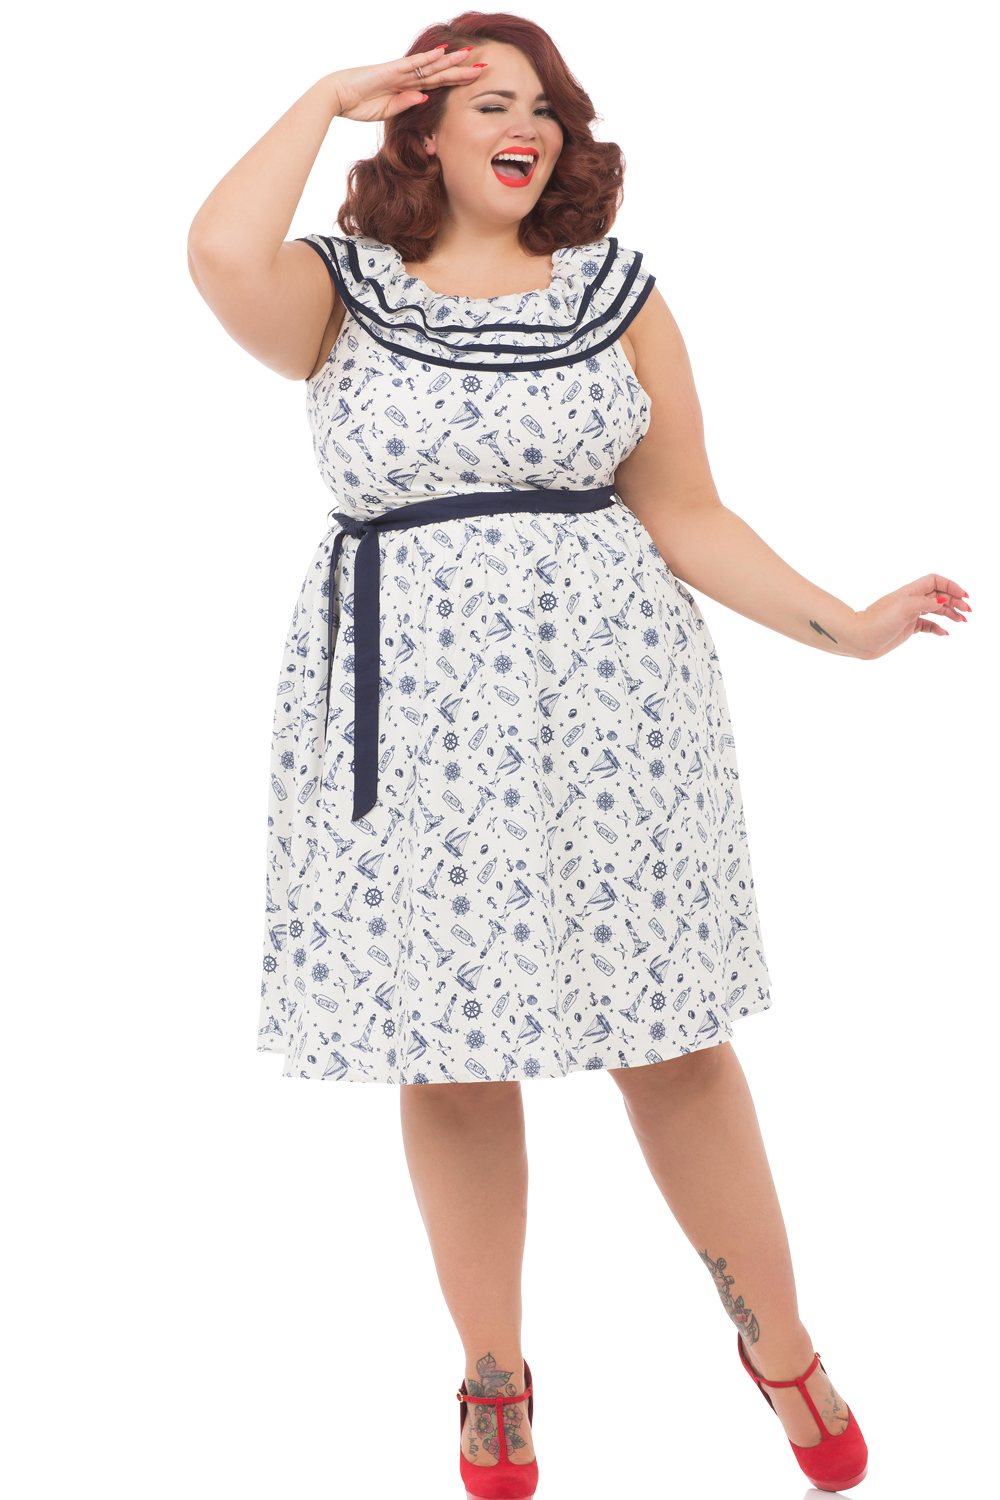 Voodoo Vixen Sailor Frilly St Tropez Plus Size Dress